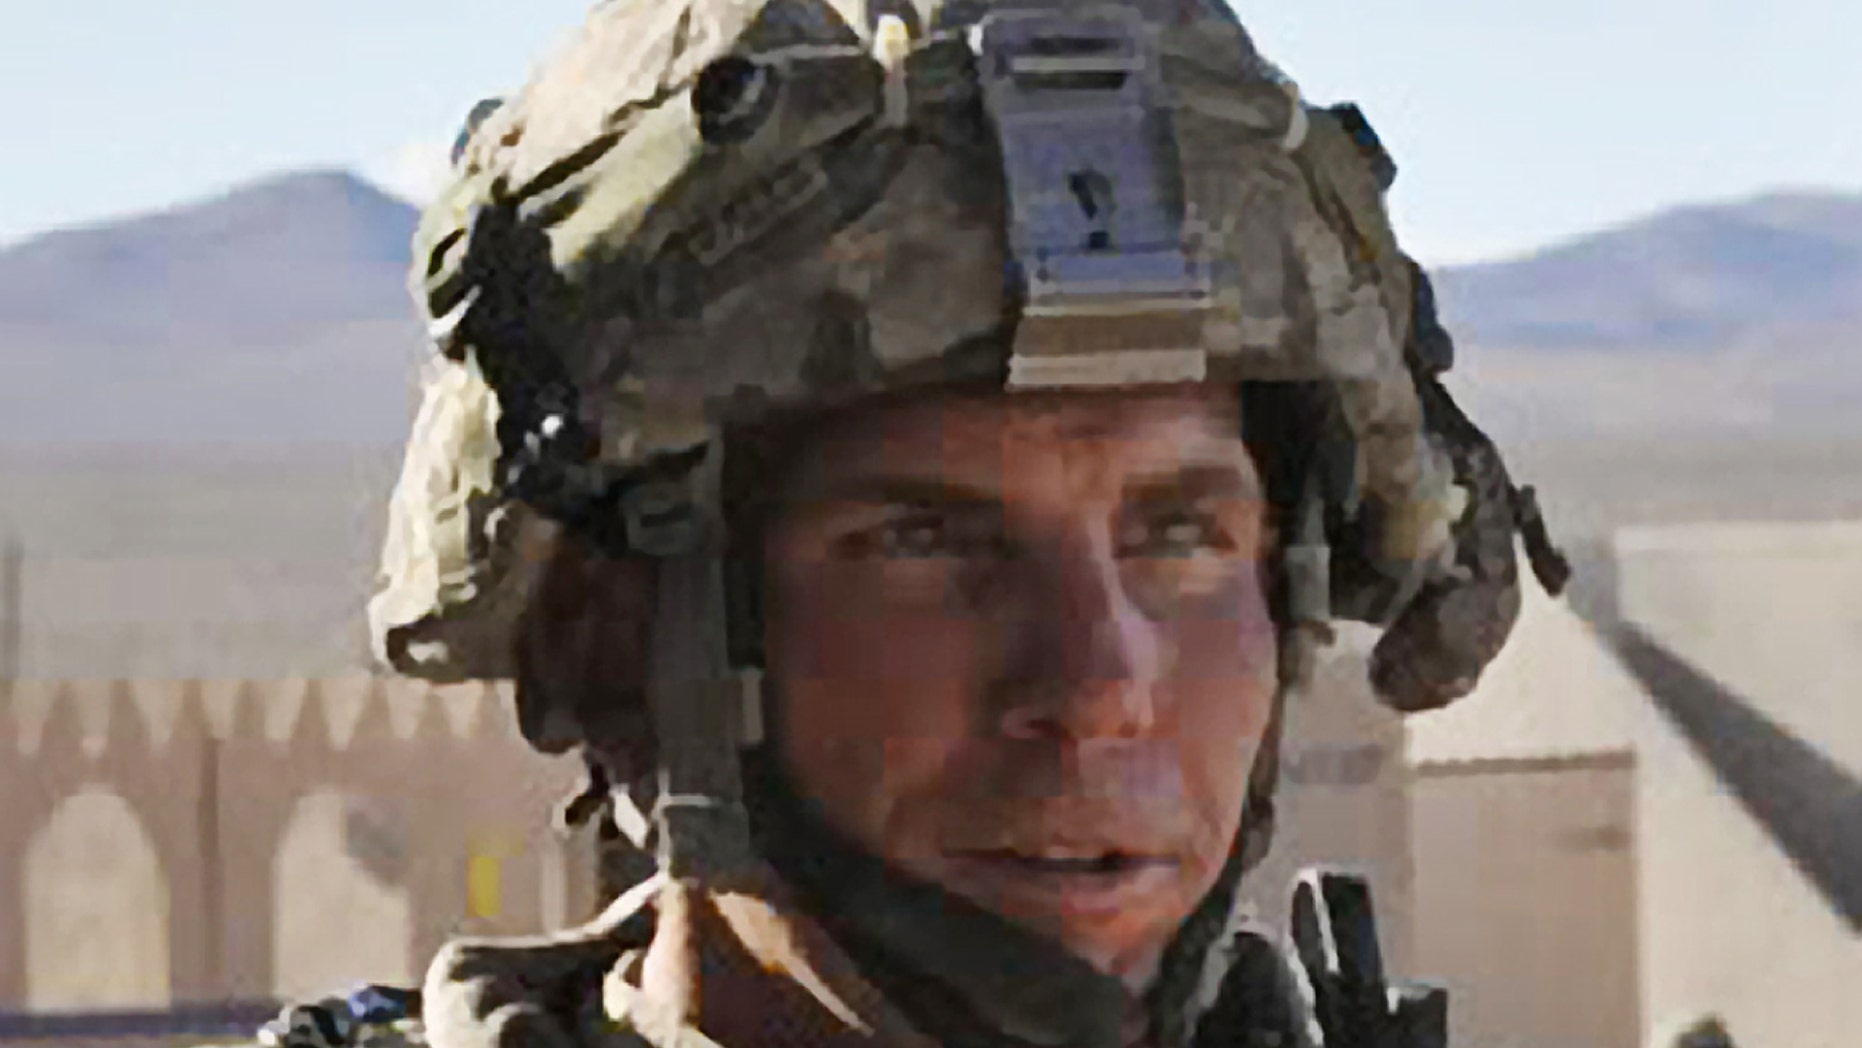 Aug. 23, 2011 - FILE photo of Staff Sgt. Robert Bales, from Defense Video & Imagery Distribution.